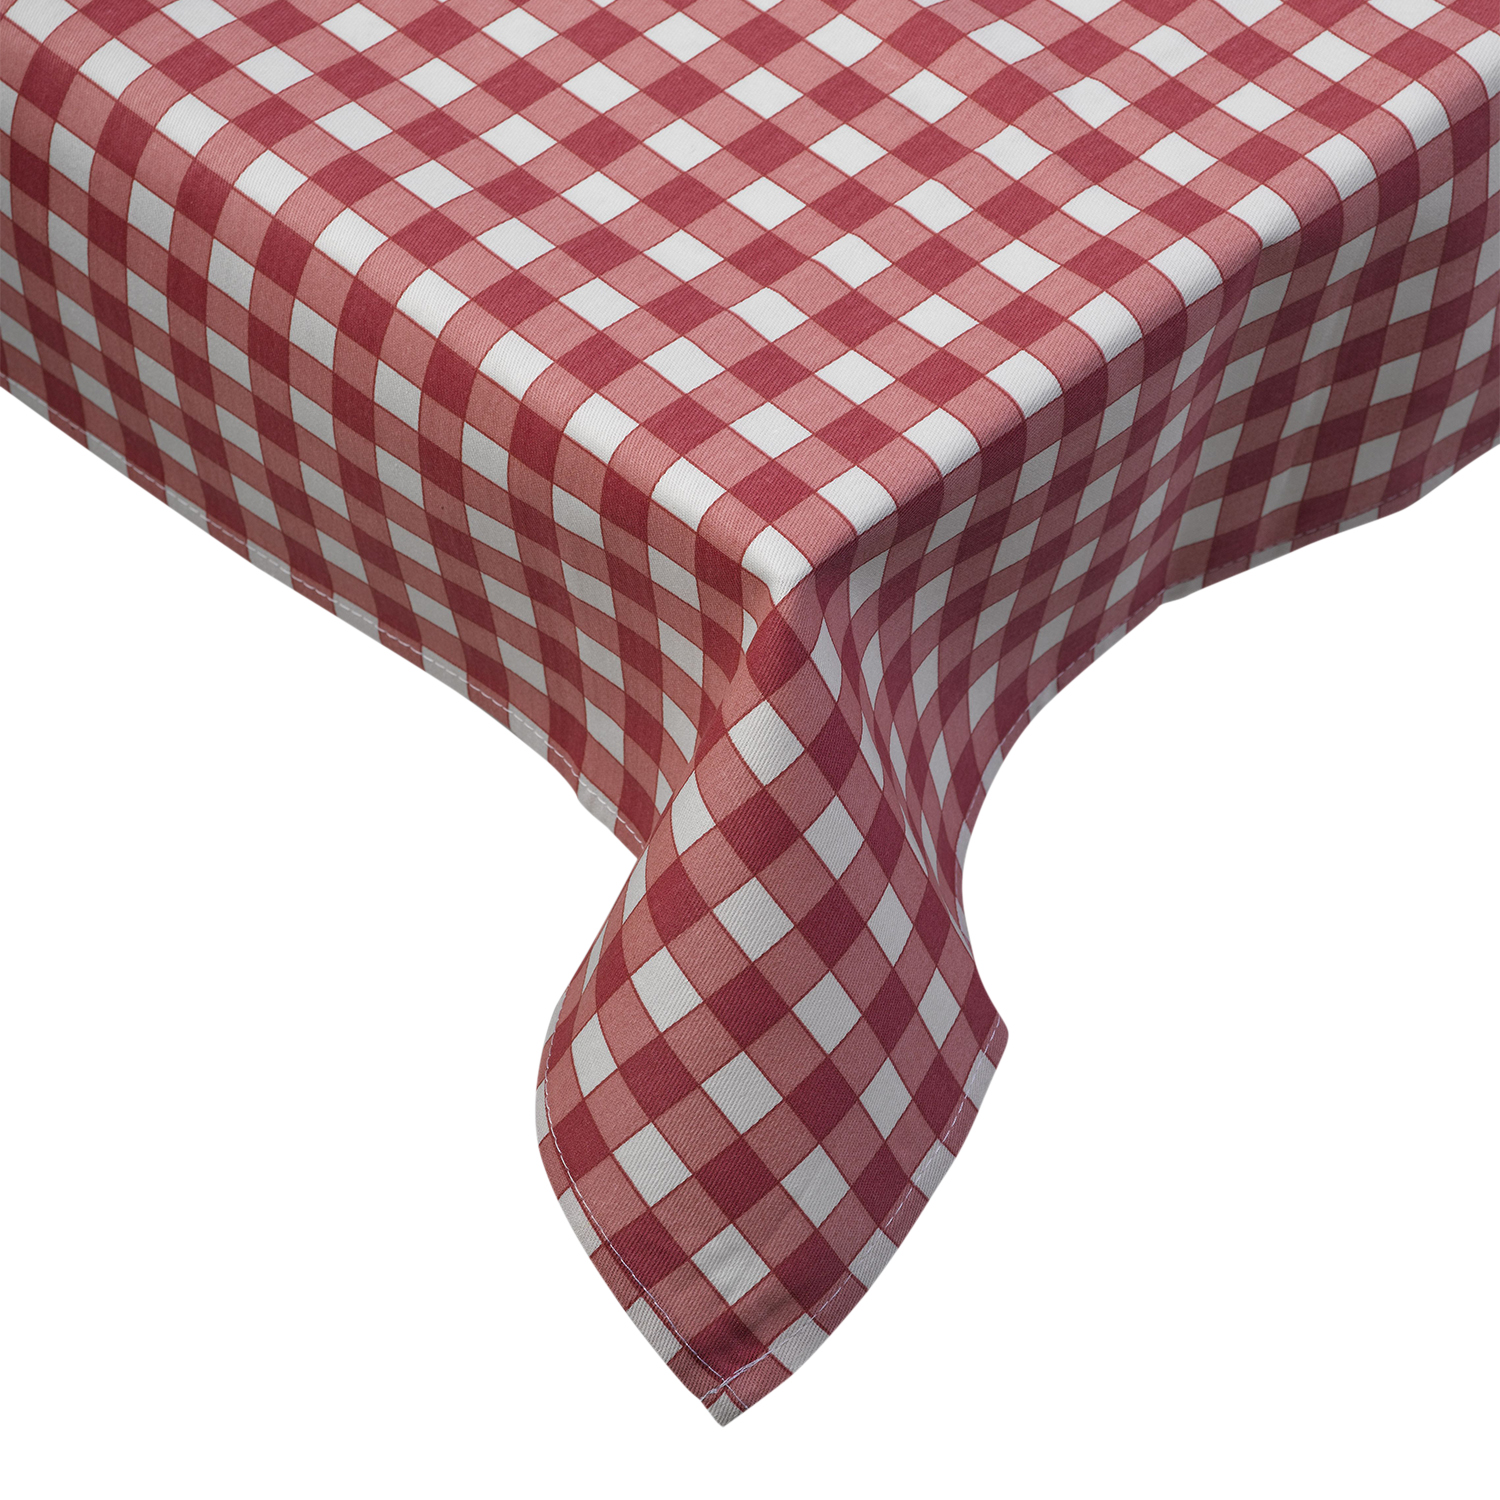 100 Cotton Gingham Check Tablecloth Dining Room Kitchen